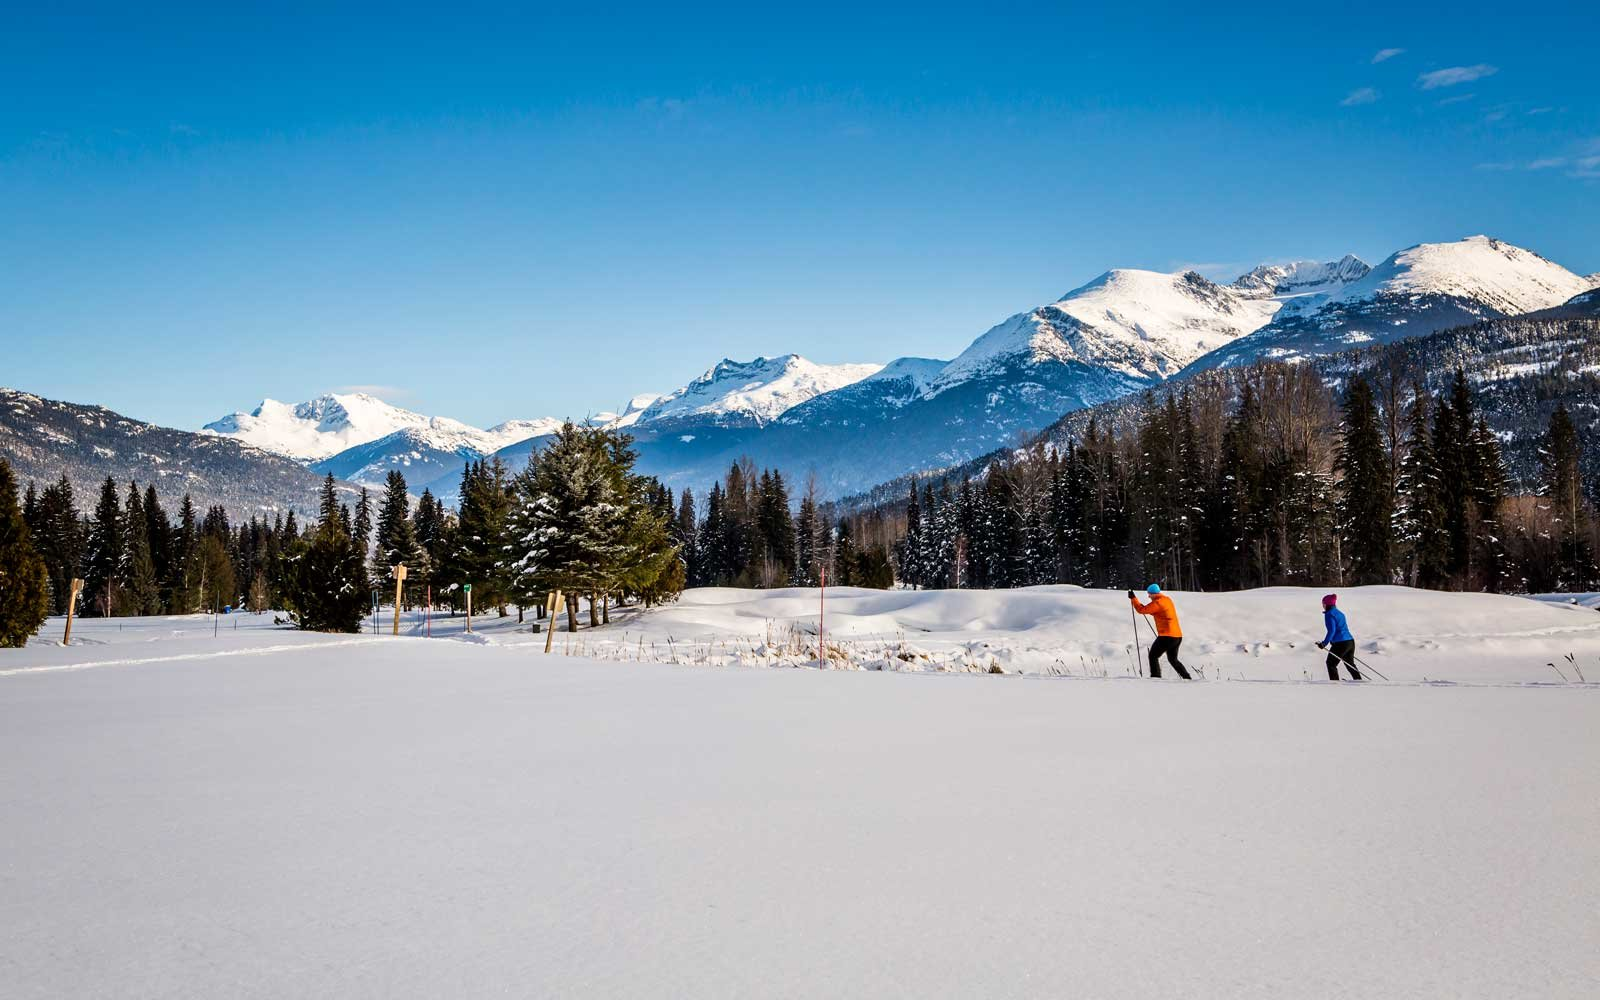 Couple cross country skiing in Whistler, British Columbia, Canada